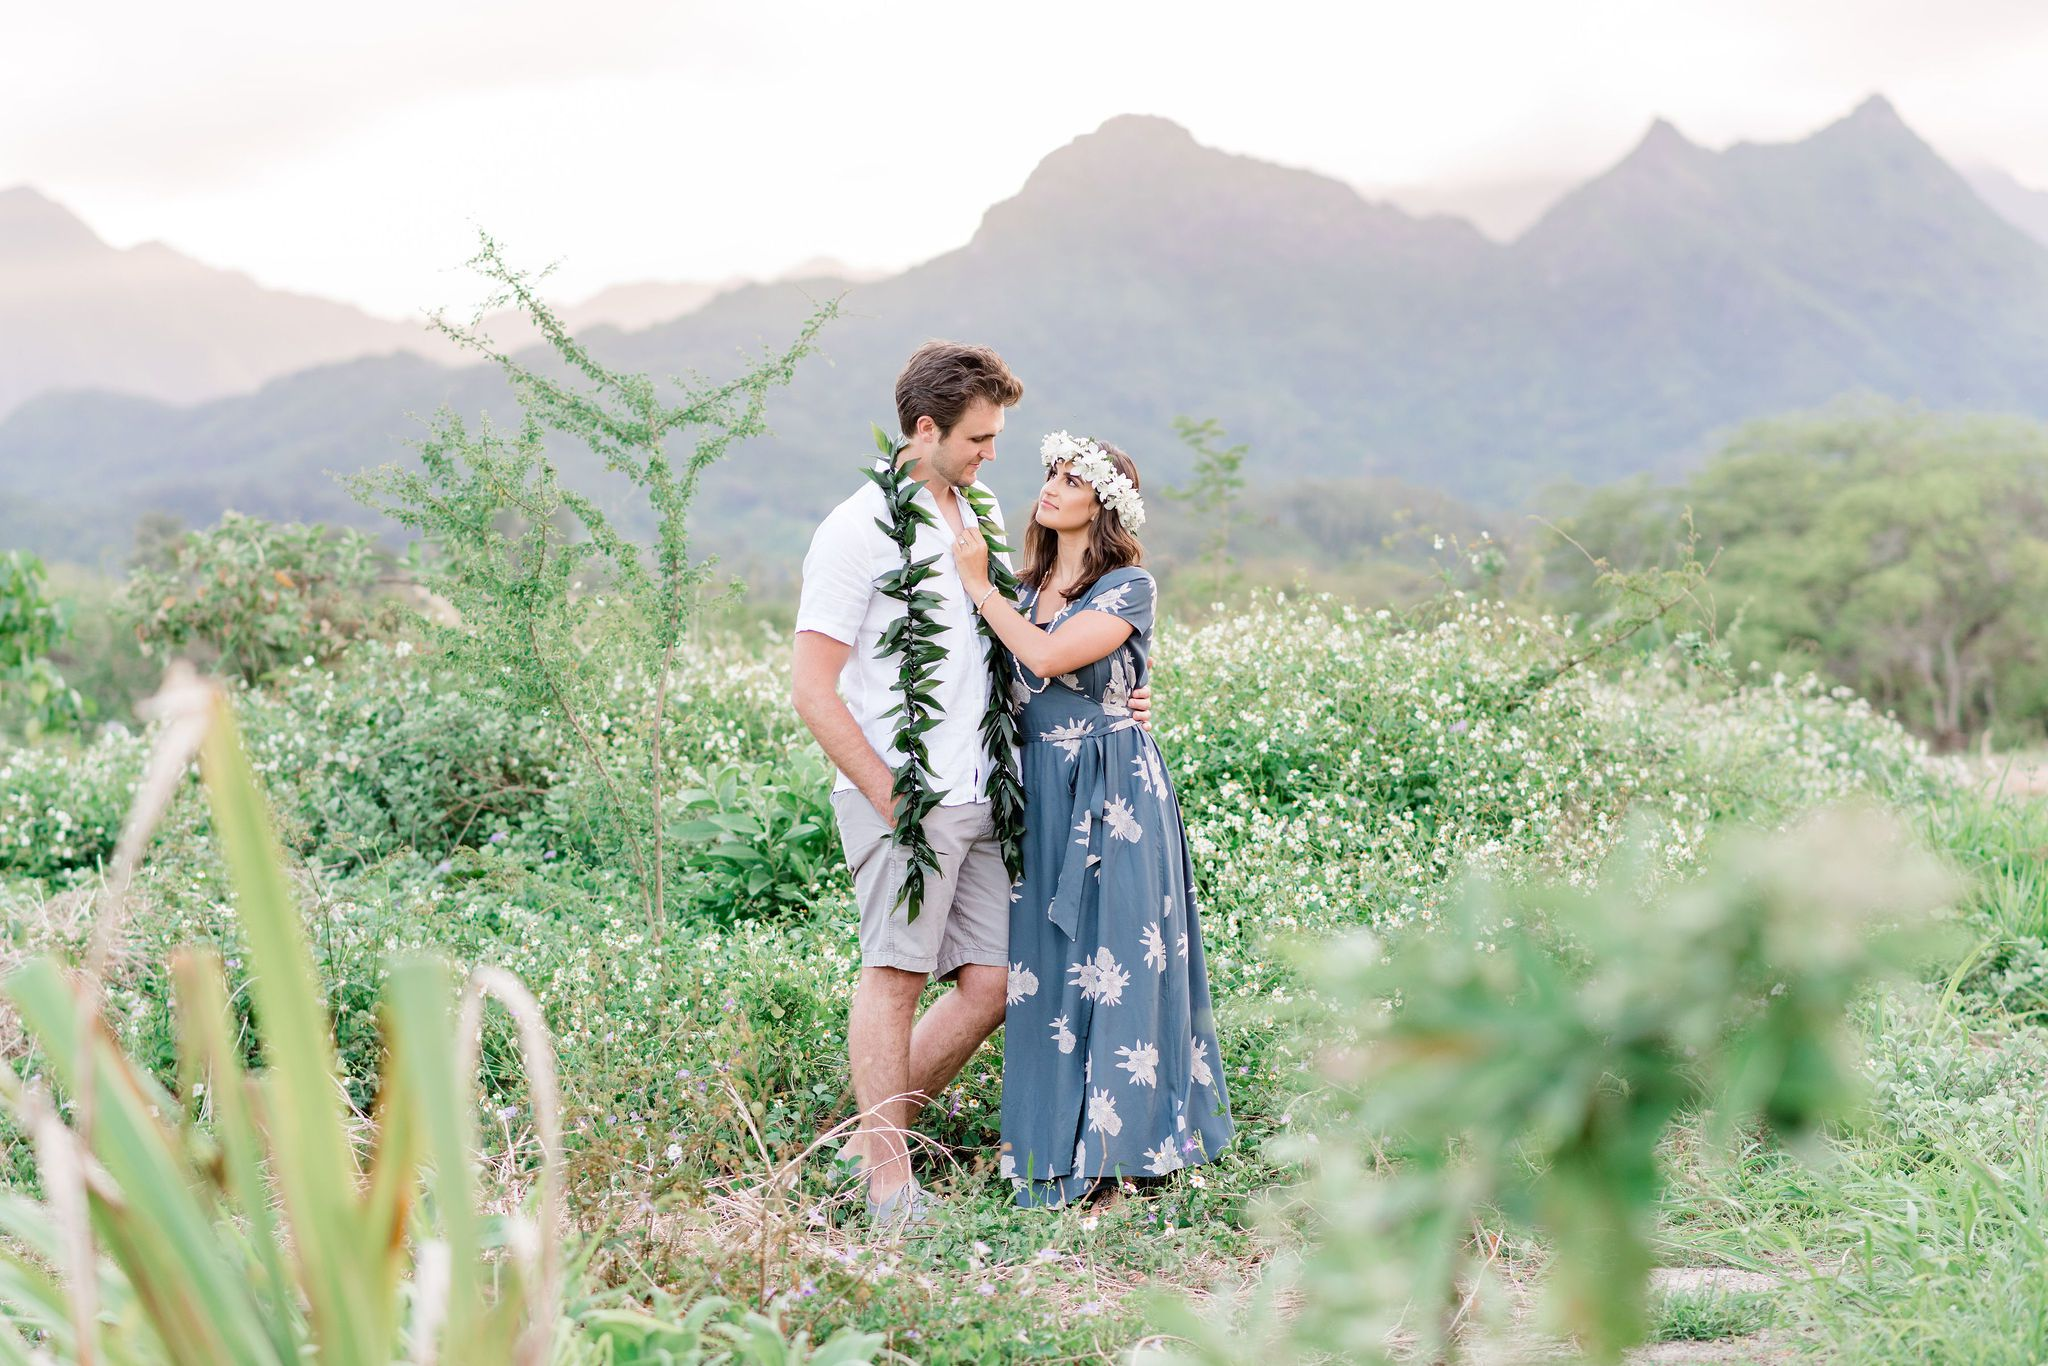 Honolulu Couples Photographer | Mountain and Beach Couples Portraits